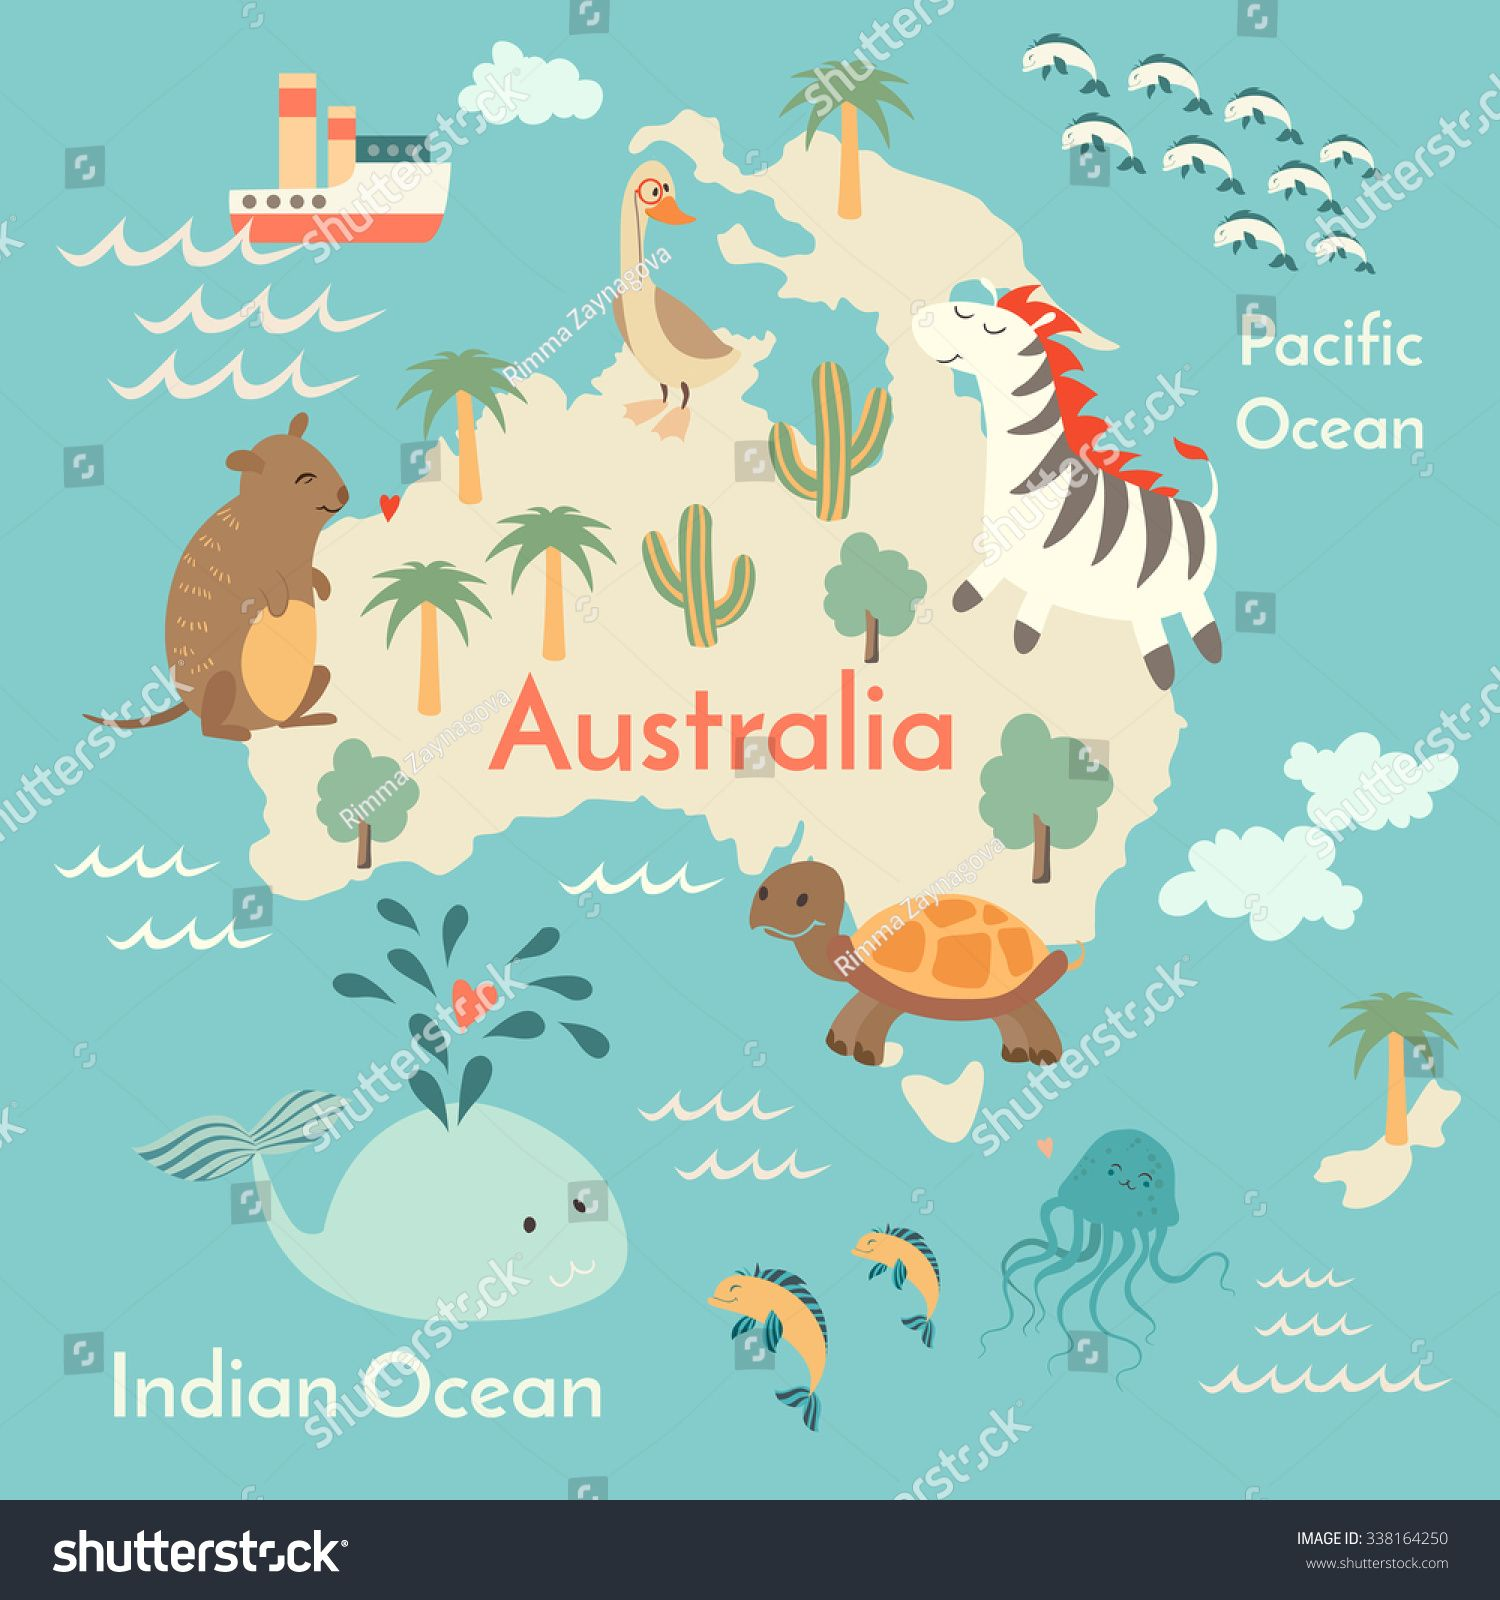 Animals world map australiastralia map for childrenkids animals world map australiastralia map for childrenkids australian animals poster gumiabroncs Image collections